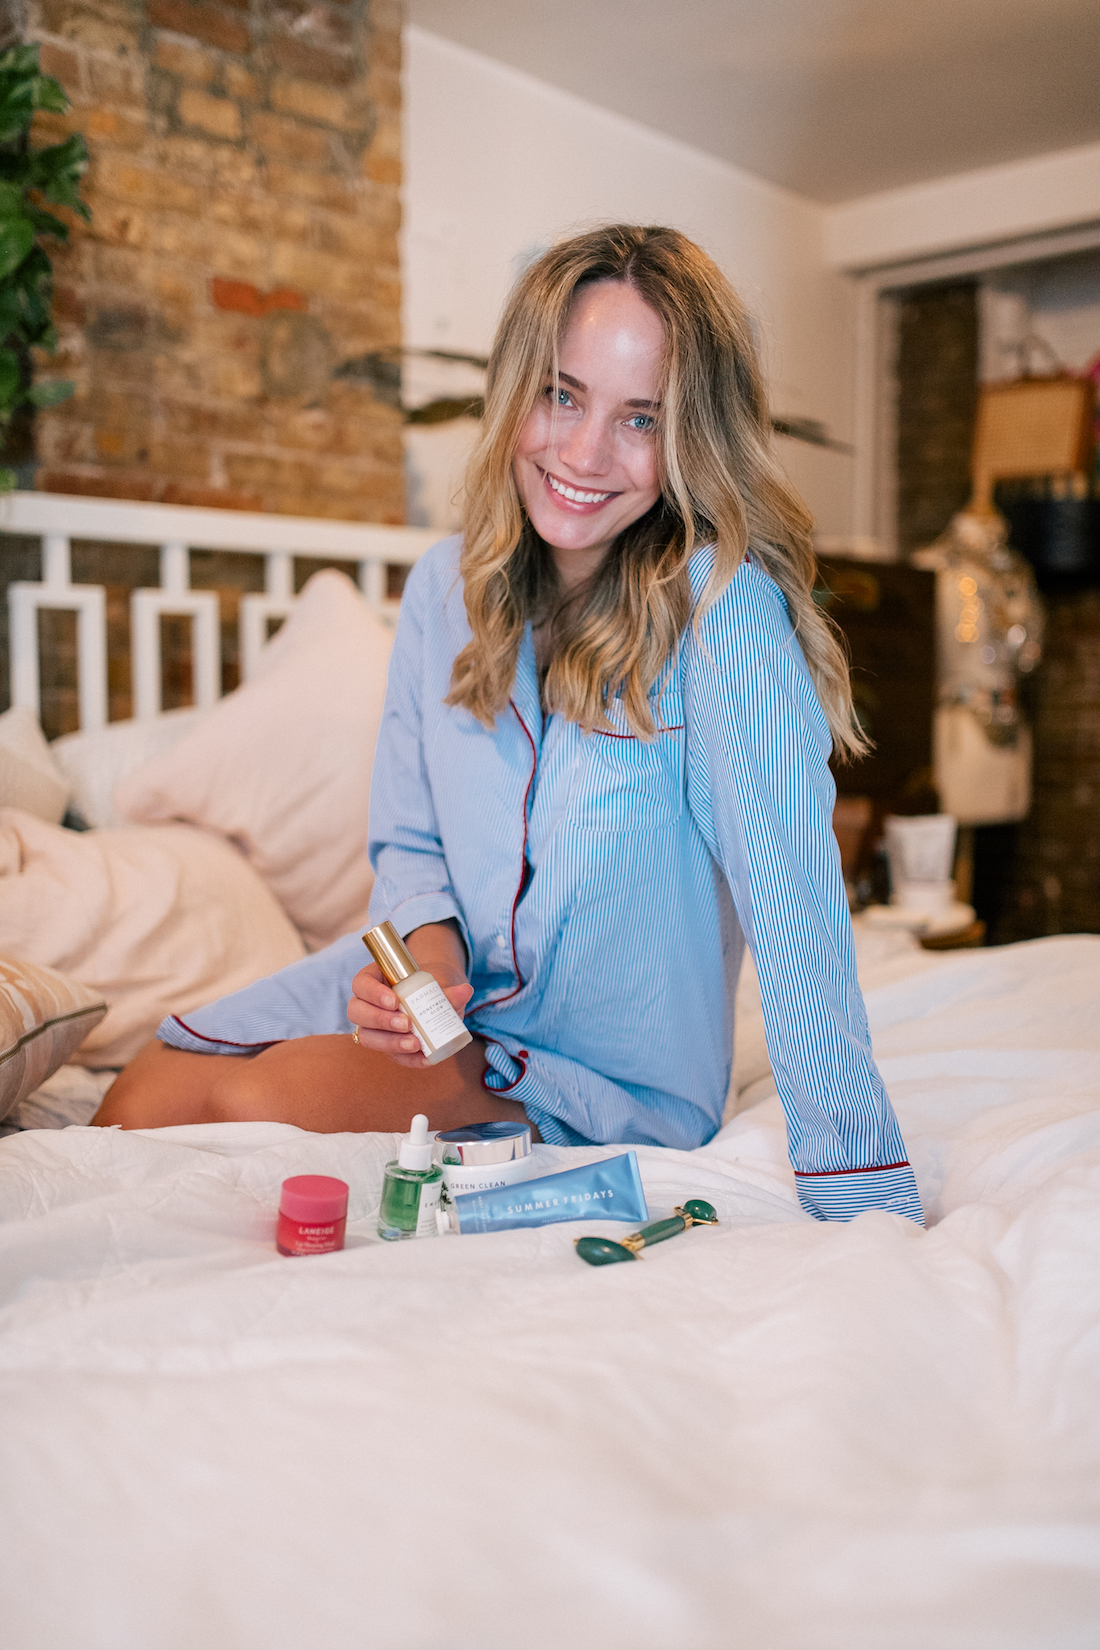 A Bedtime Routine for Glowing Skin